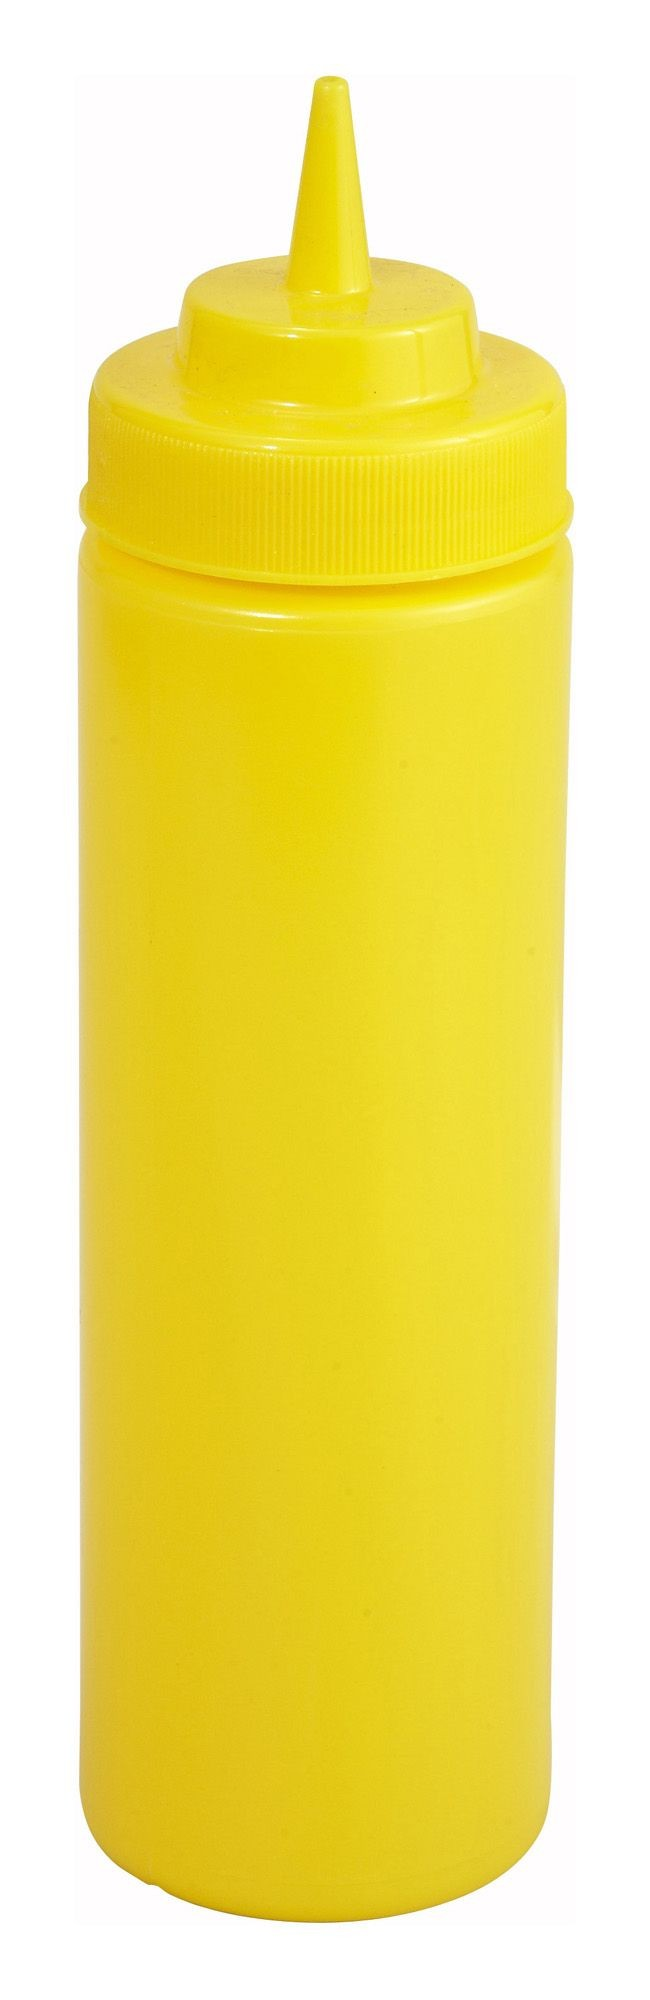 Winco PSW-16Y Yellow Plastic 16 oz. Wide-Mouth Squeeze Bottle